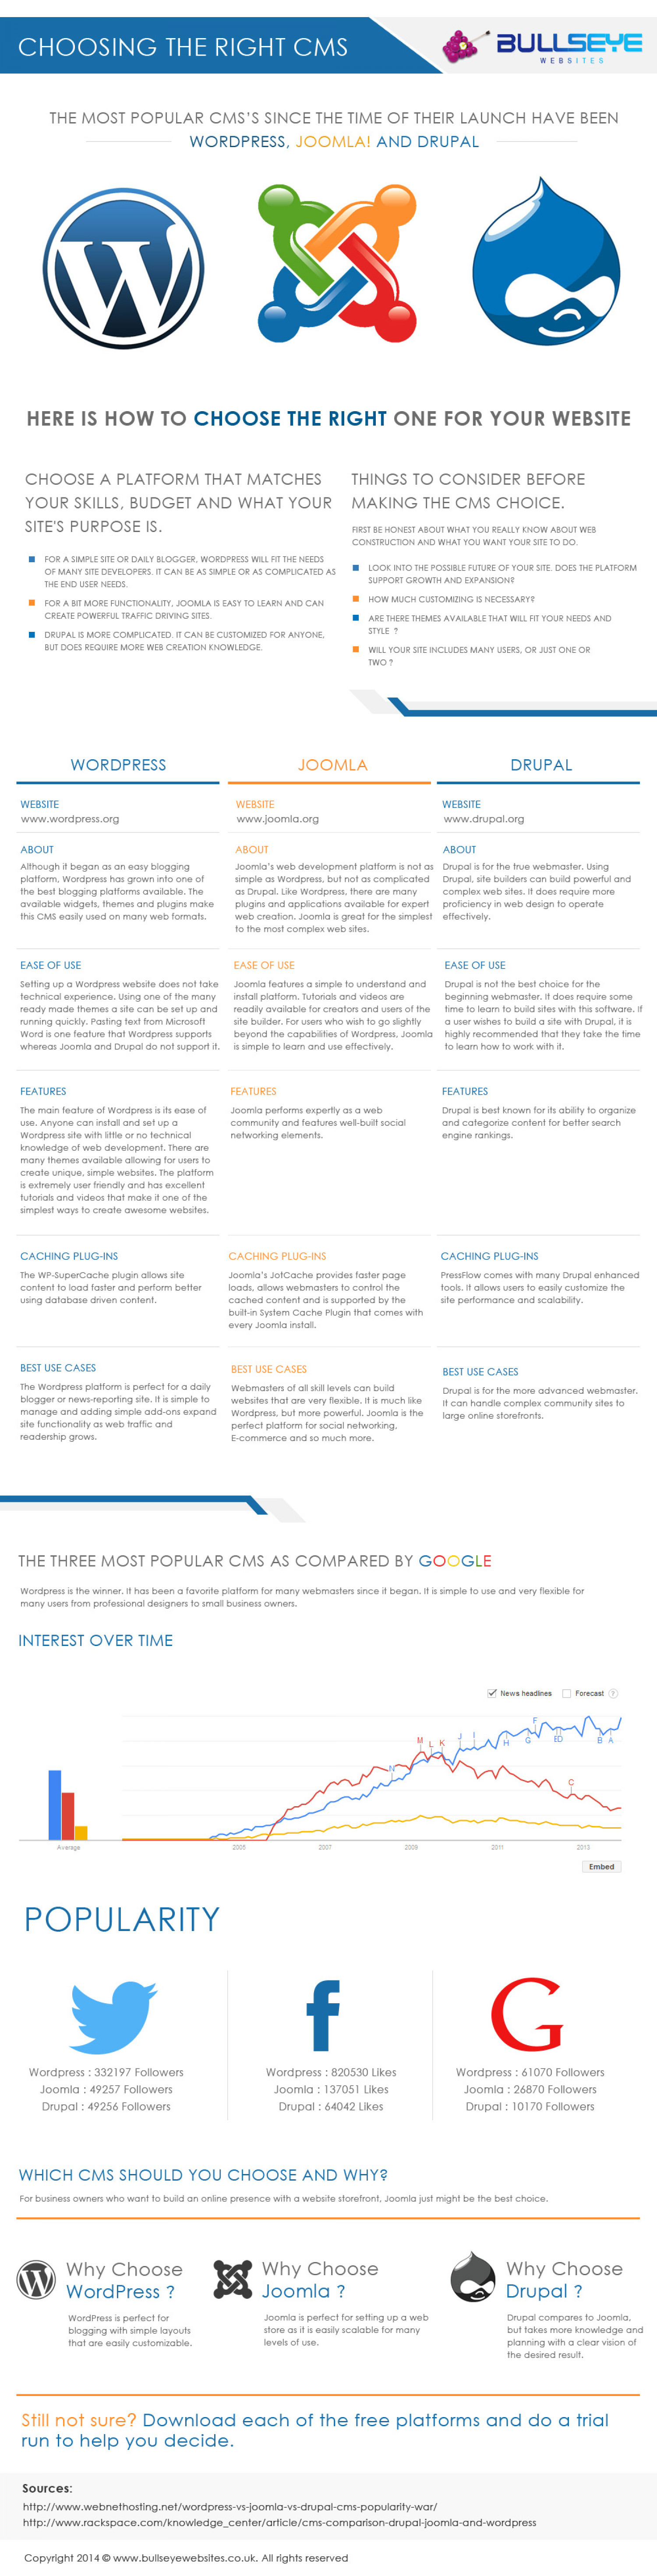 CHOOSING THE RIGHT CMS Infographic